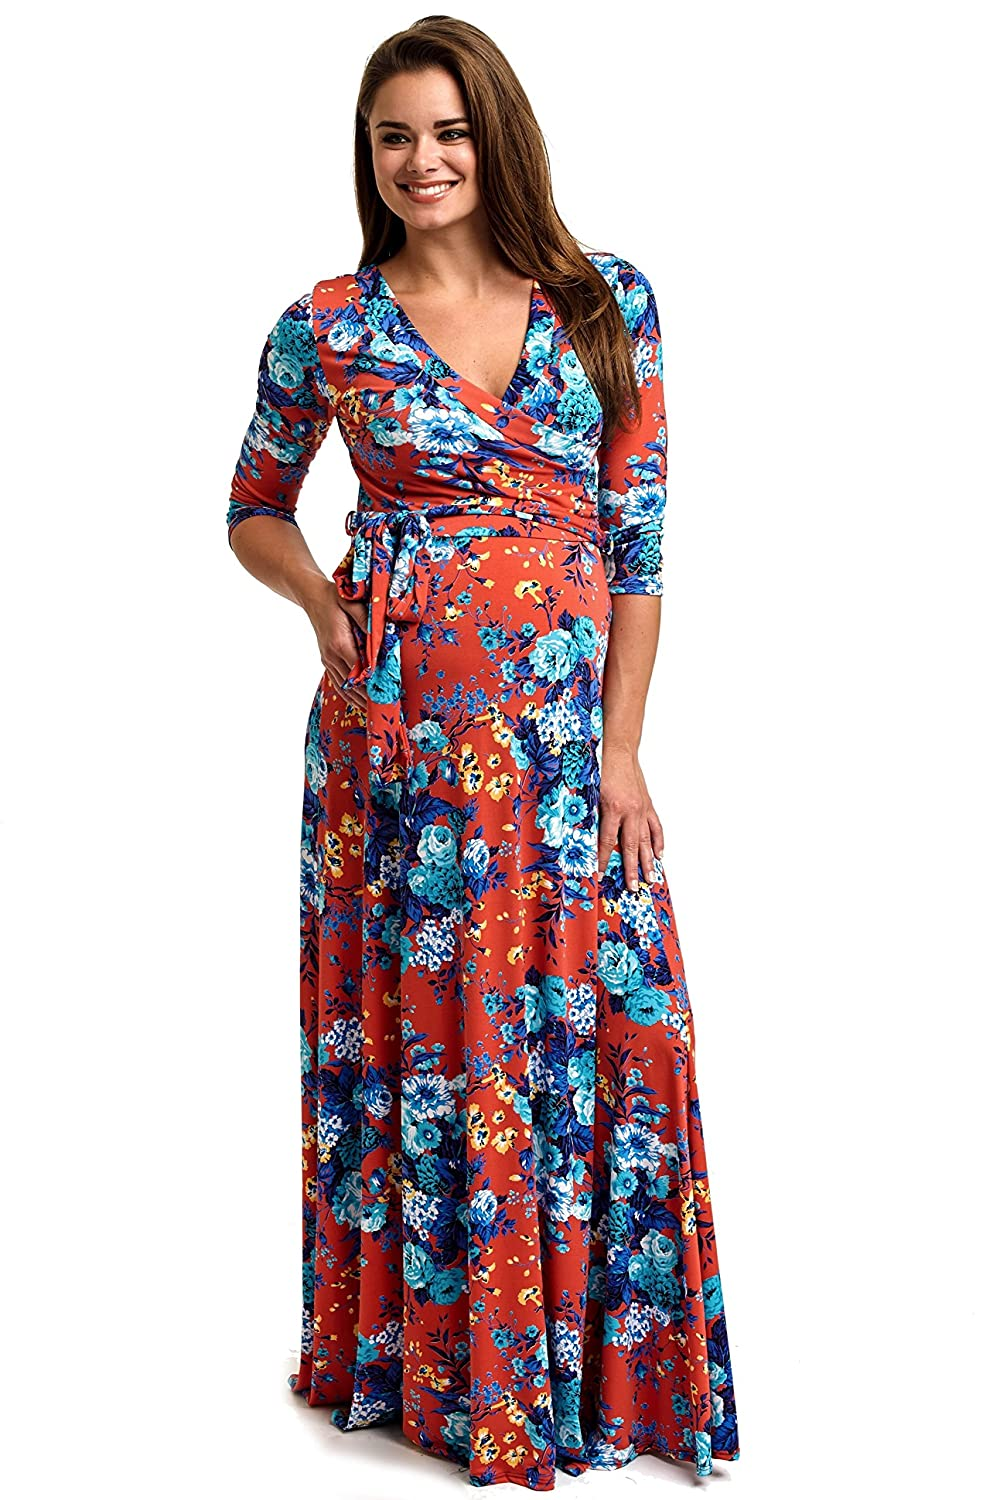 b8e369c7d76d PinkBlush Maternity Red Floral Draped 3/4 Sleeve Maternity Maxi Dress,  Small at Amazon Women's Clothing store: